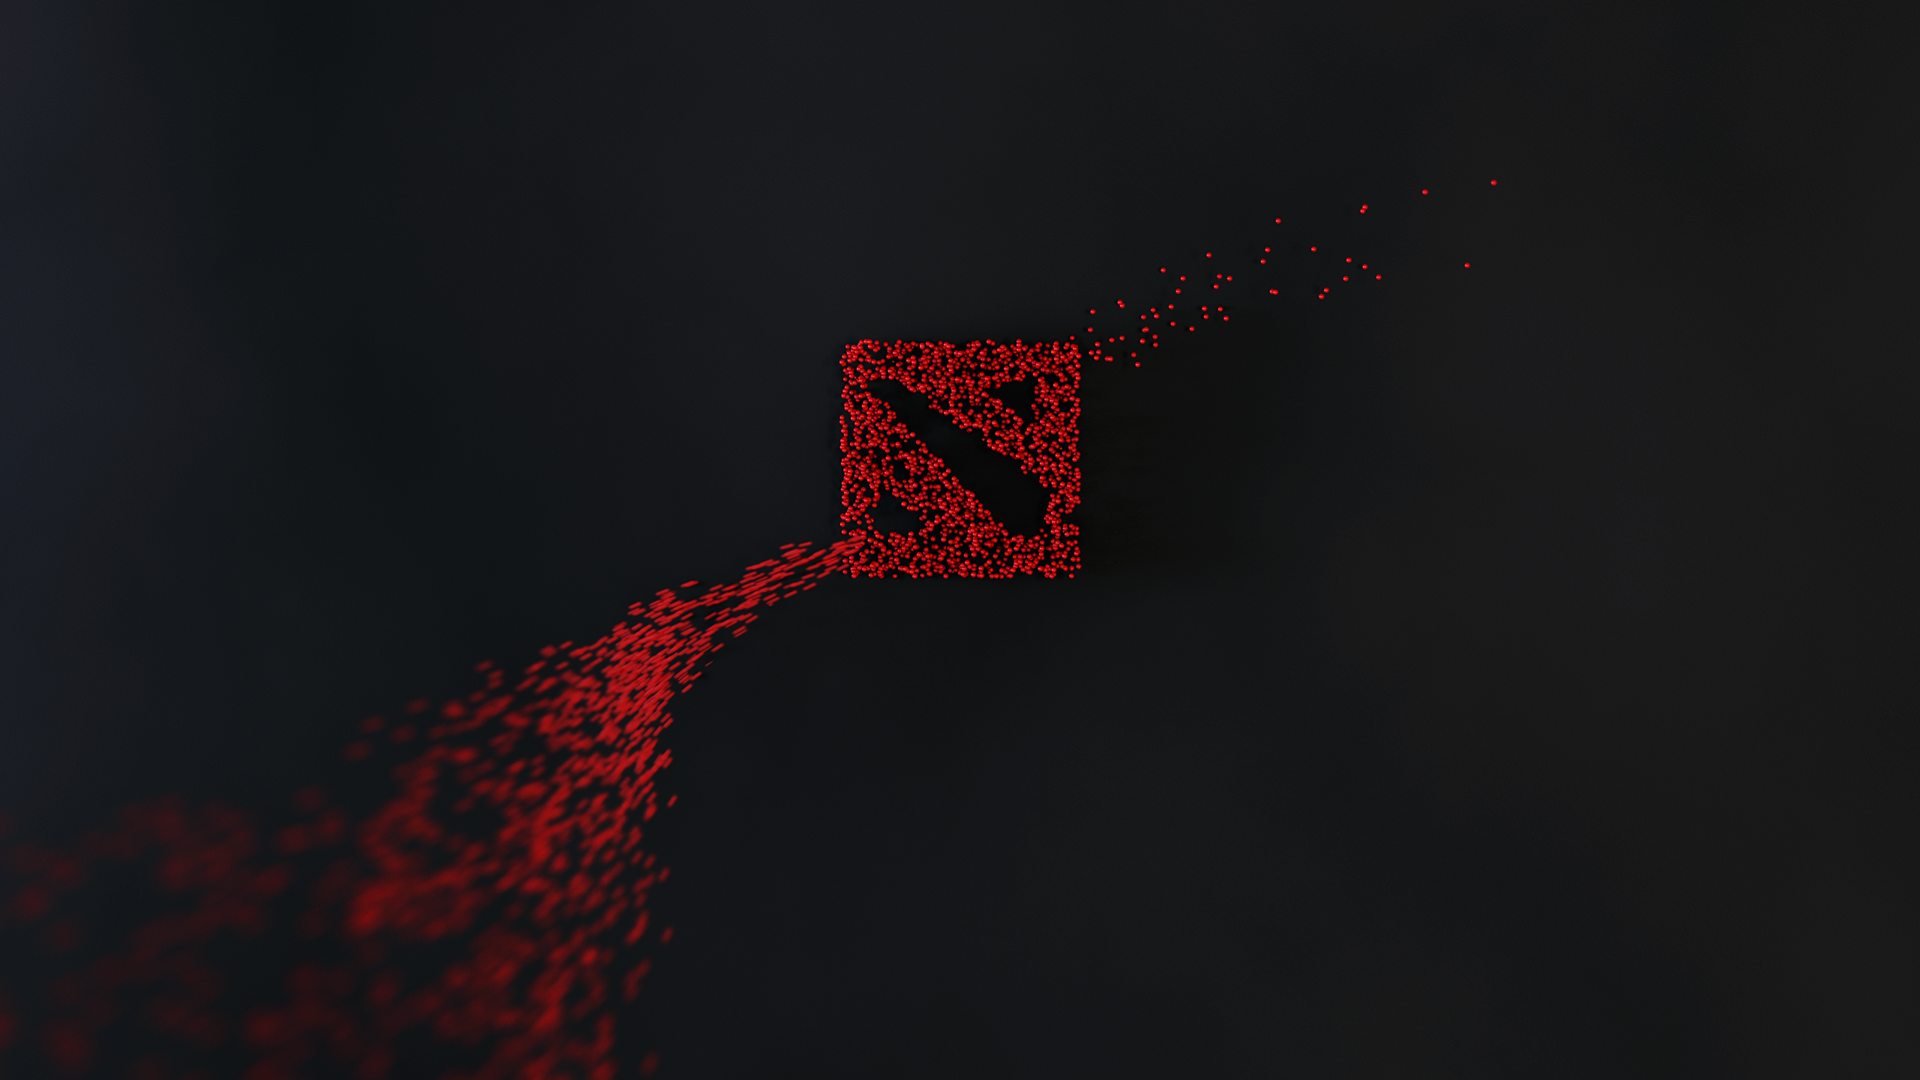 Dota 2 Hd Wallpaper Background Image And